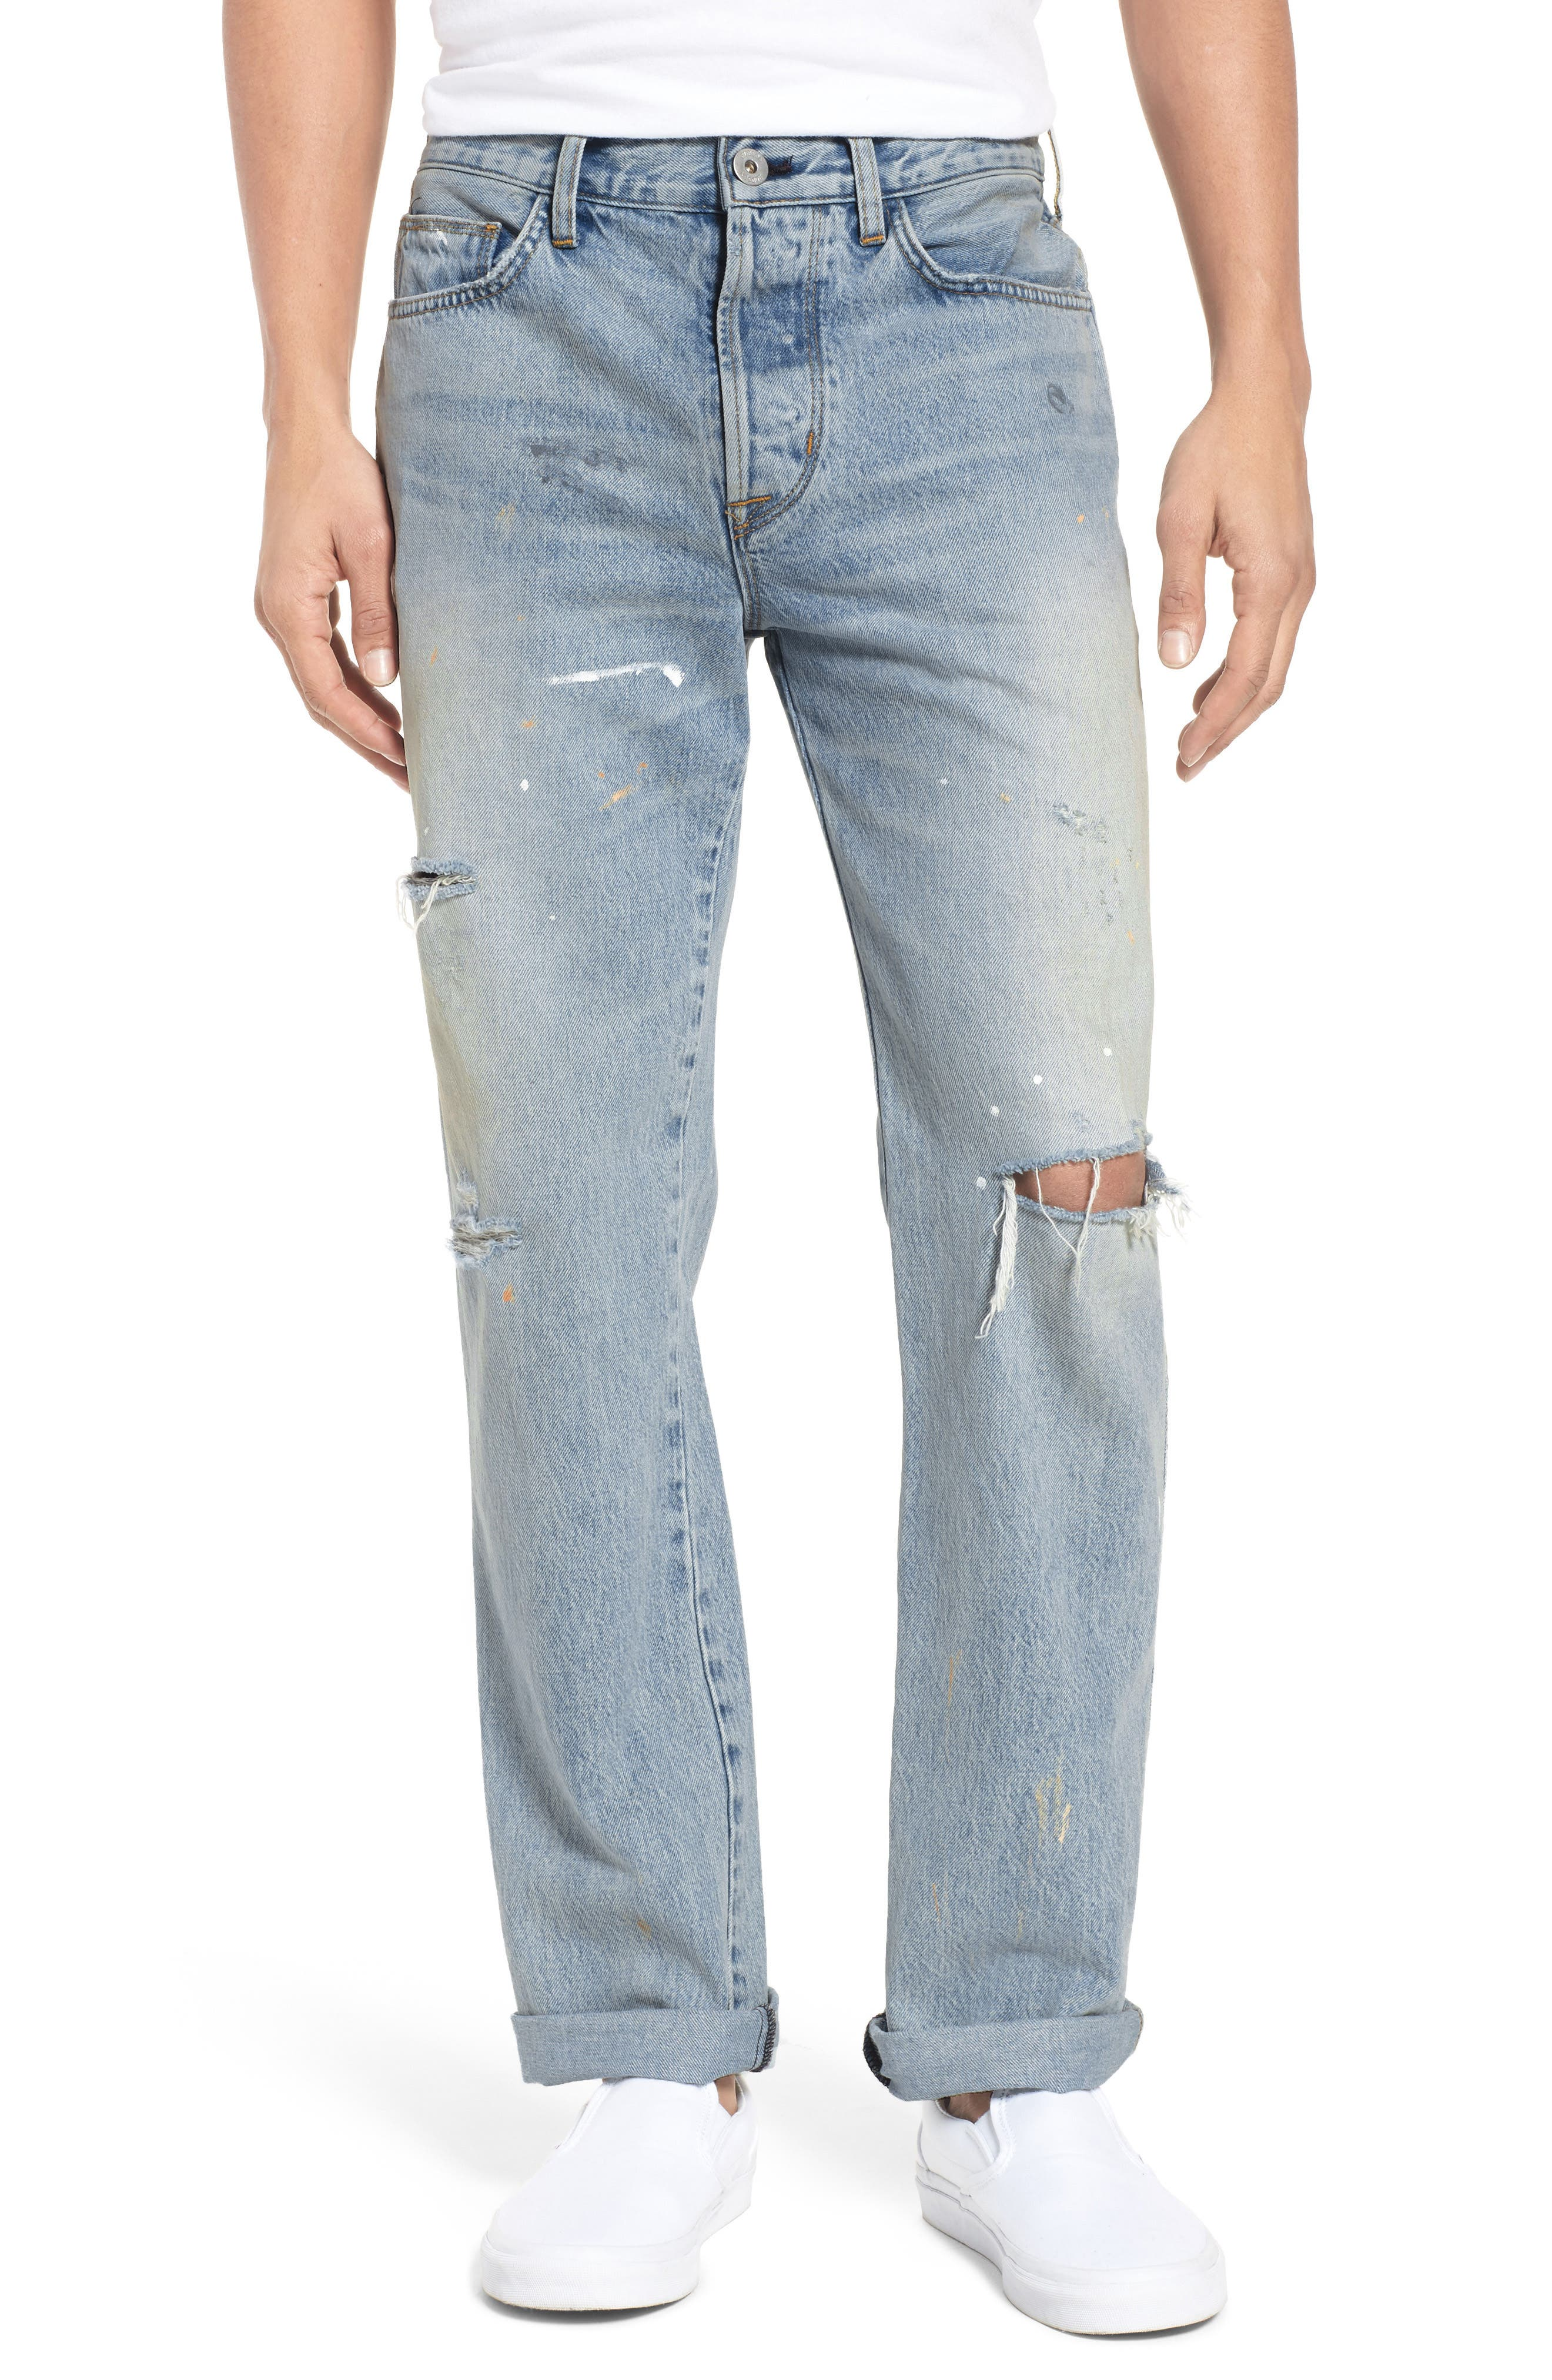 Dixon Straight Fit Jeans,                         Main,                         color,